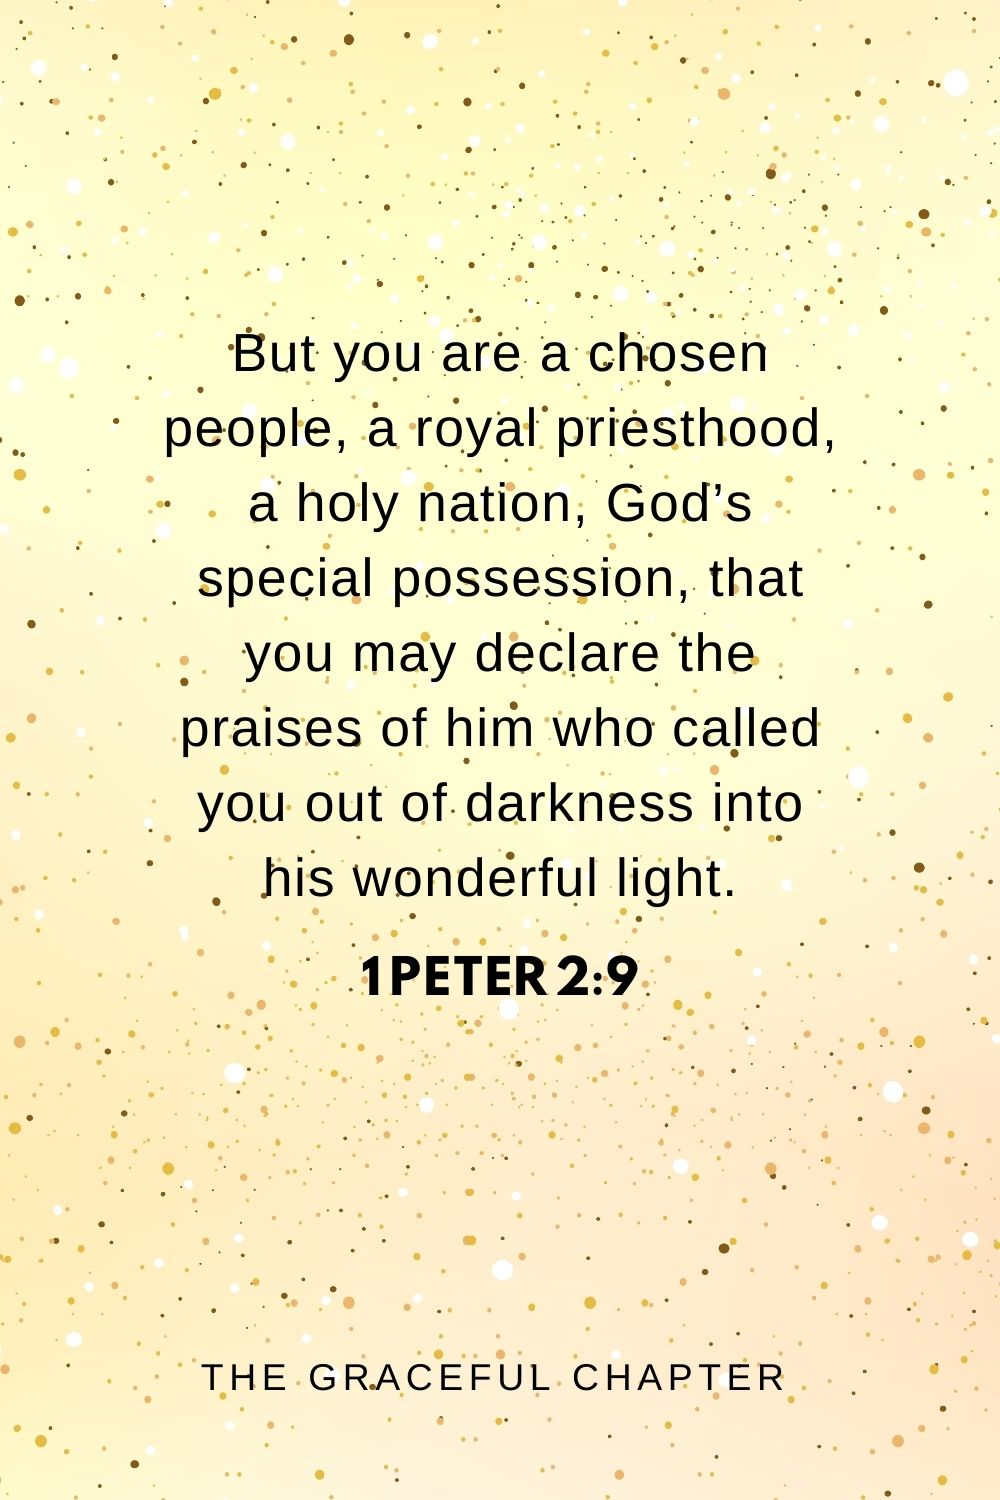 But you are a chosen people, a royal priesthood, a holy nation, God's special possession, that you may declare the praises of him who called you out of darkness into his wonderful light. 1 Peter 2:9